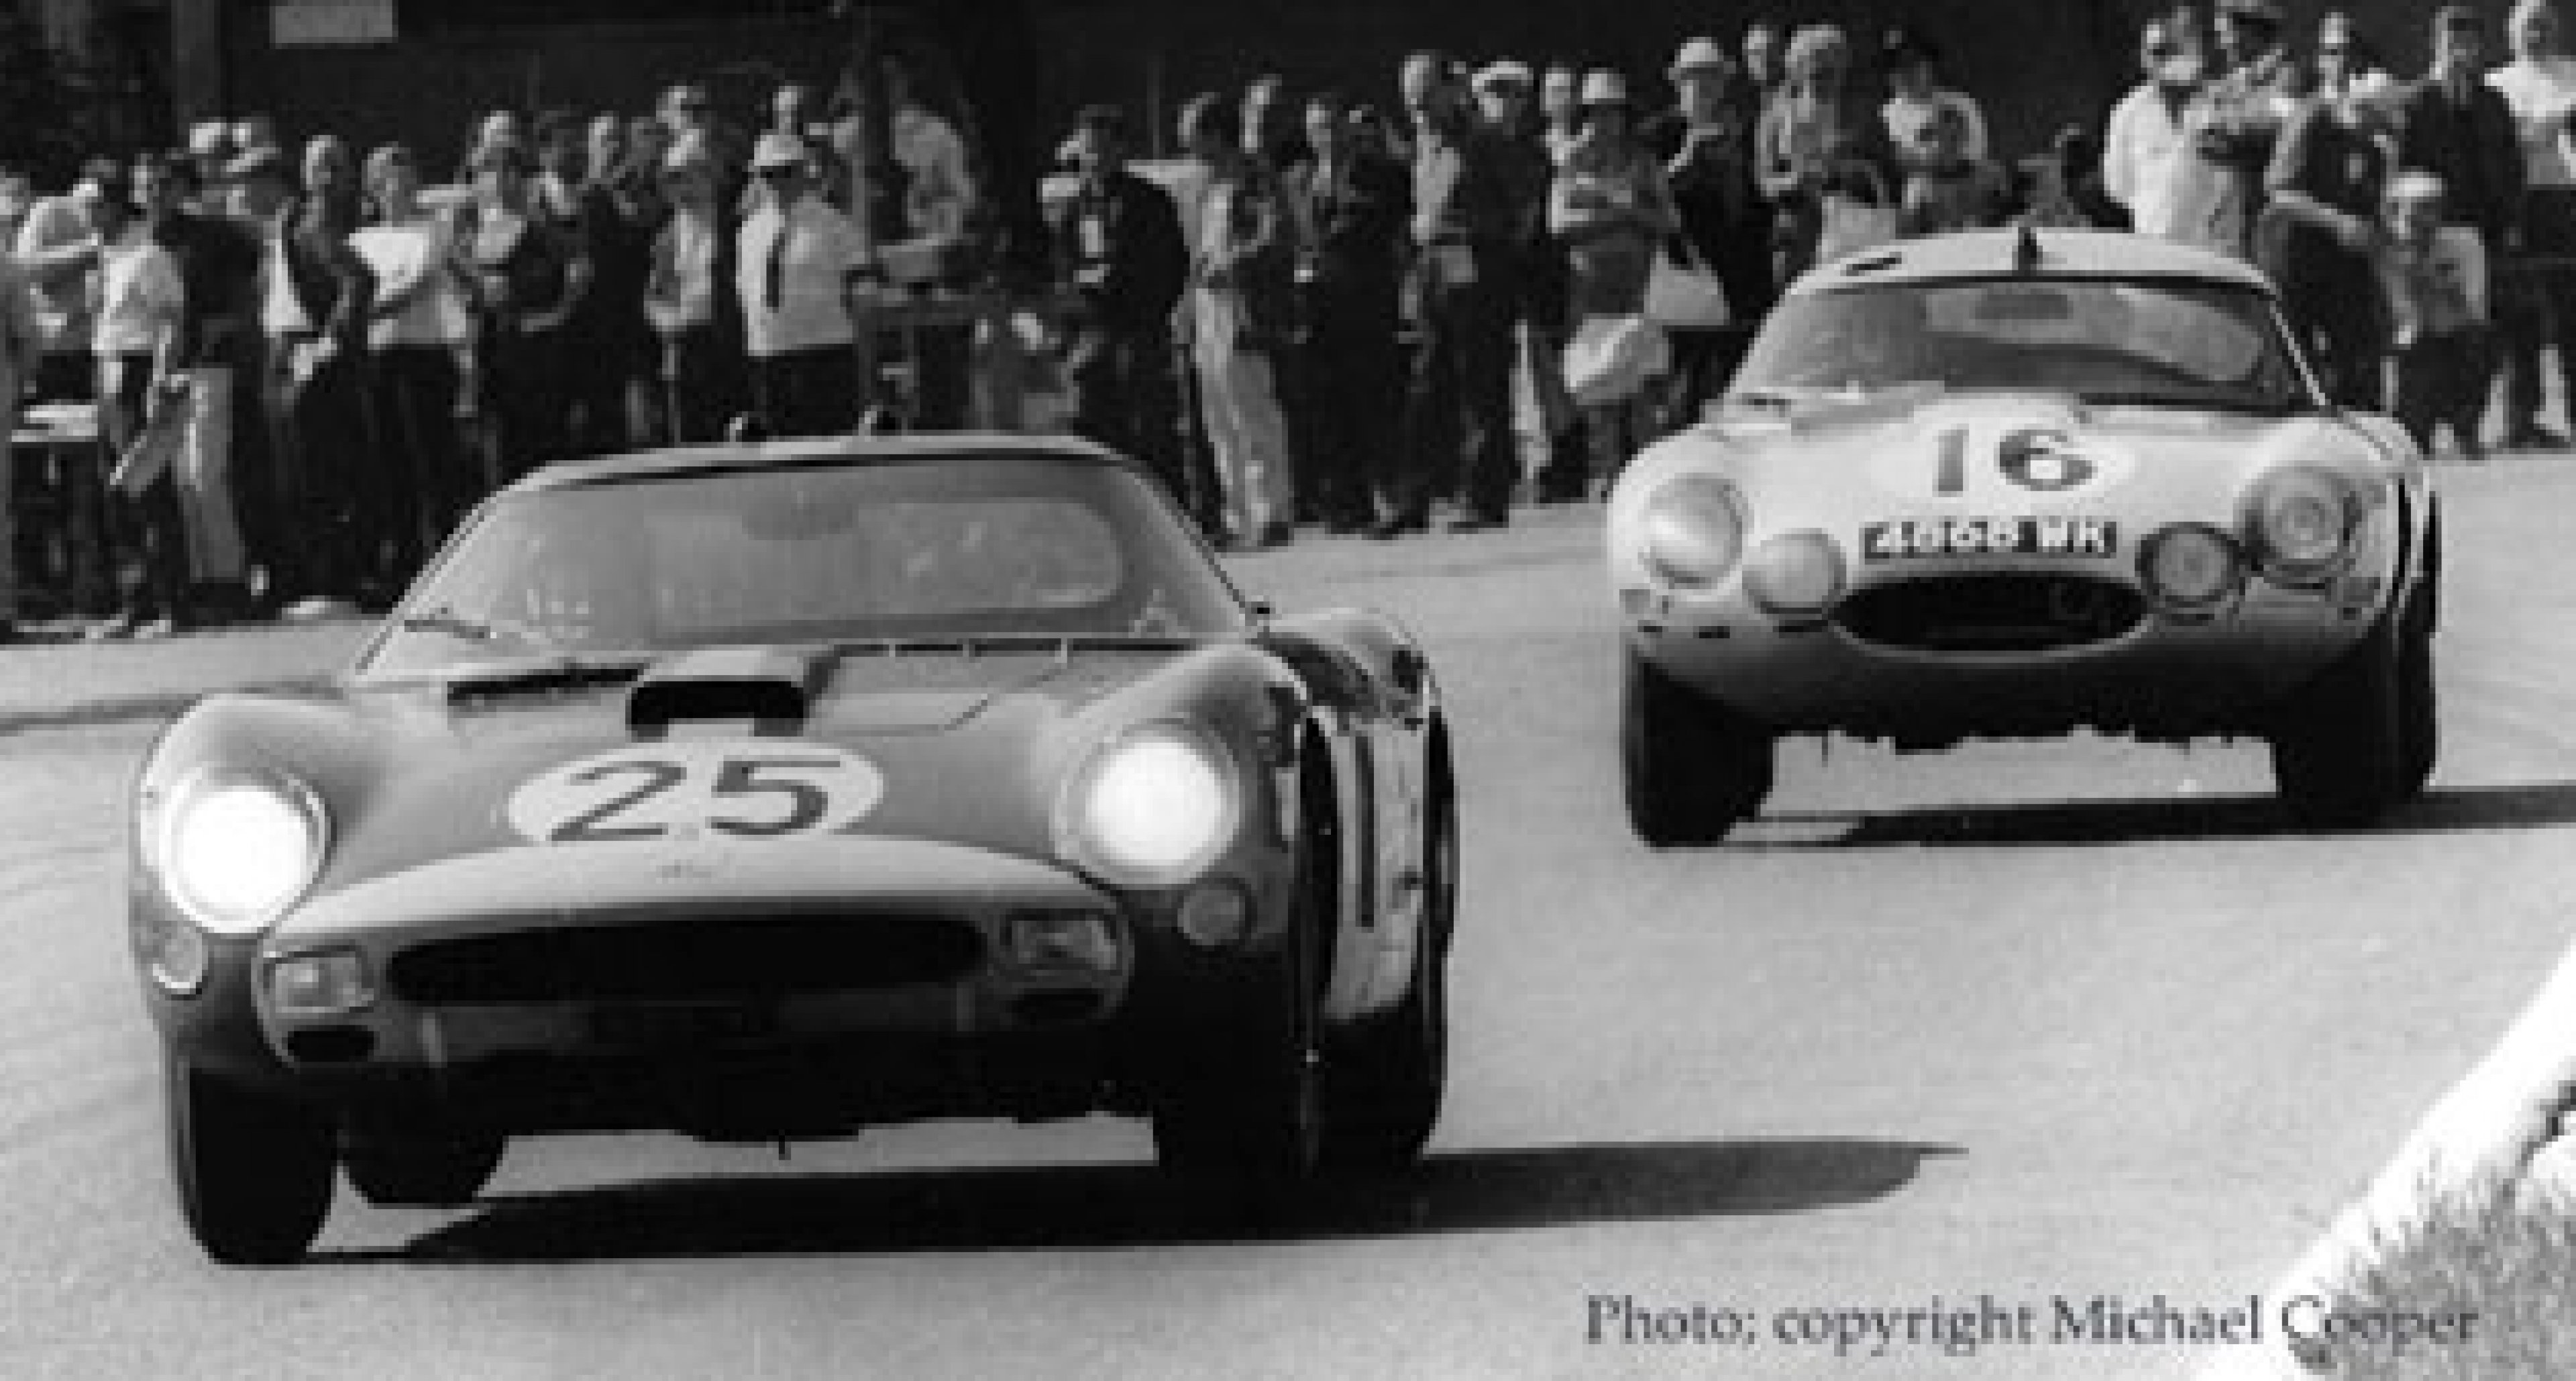 Le Mans Classic  2002 - Entry revealed